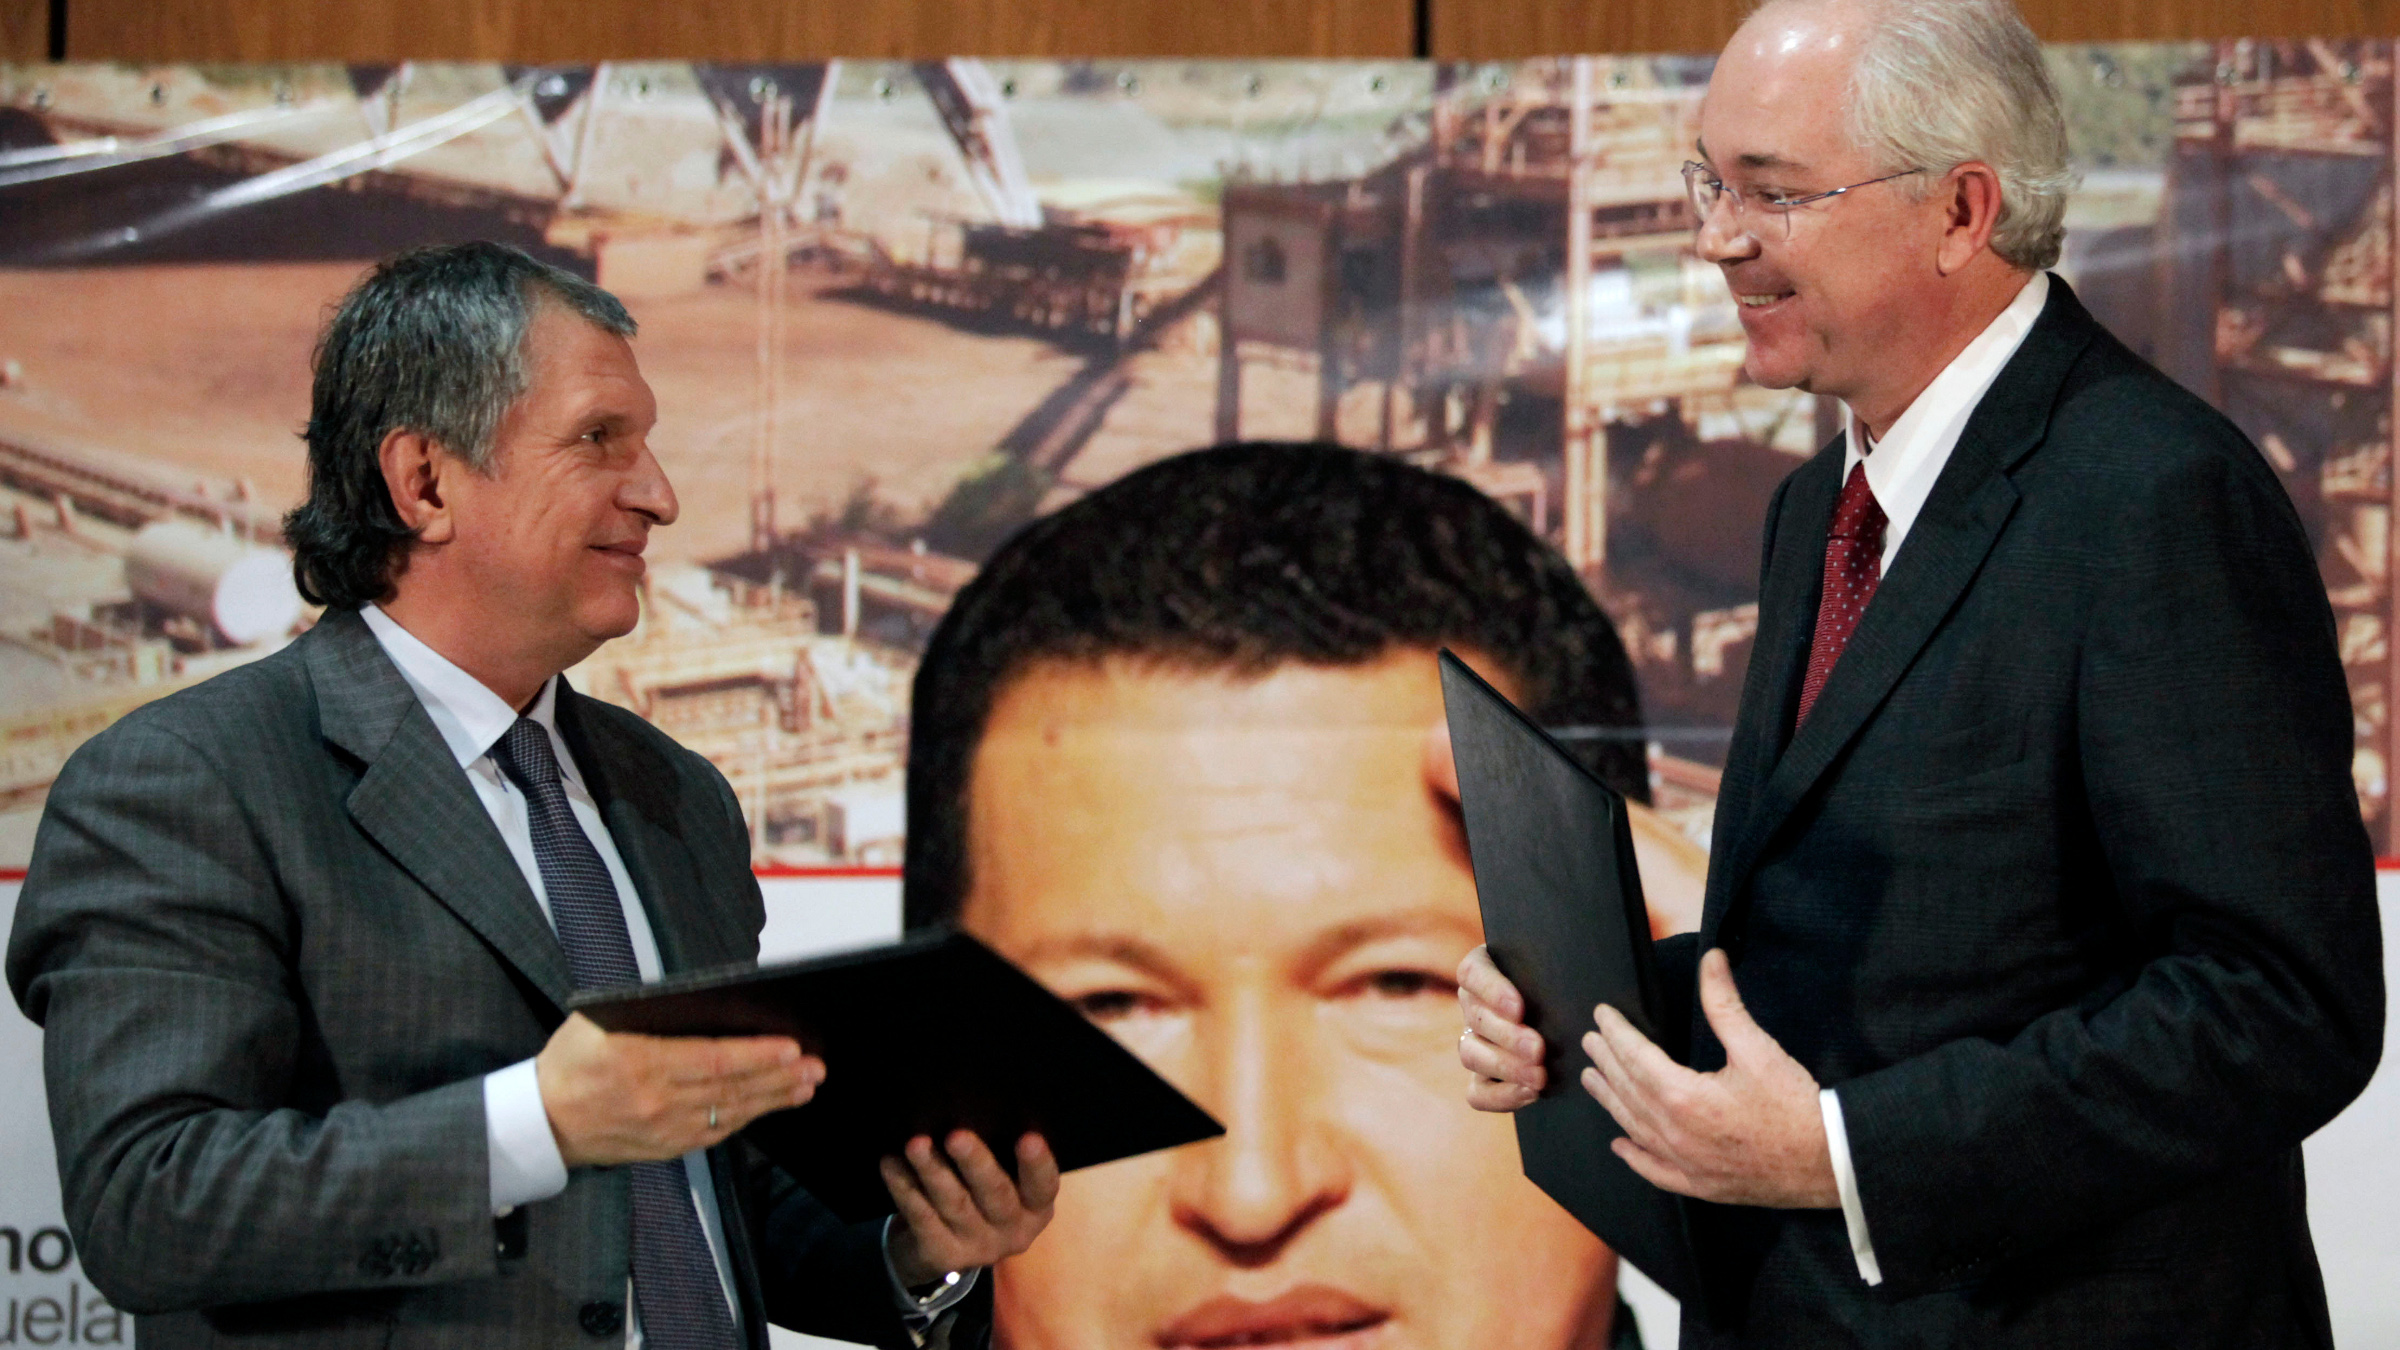 Venezuela's Oil Minister Rafael Ramirez, right, and Igor Sechin, chief executive of Russian energy company Rosneft, smile at each other after a signing ceremony in Caracas, Venezuela, Tuesday, Jan. 29, 2013.